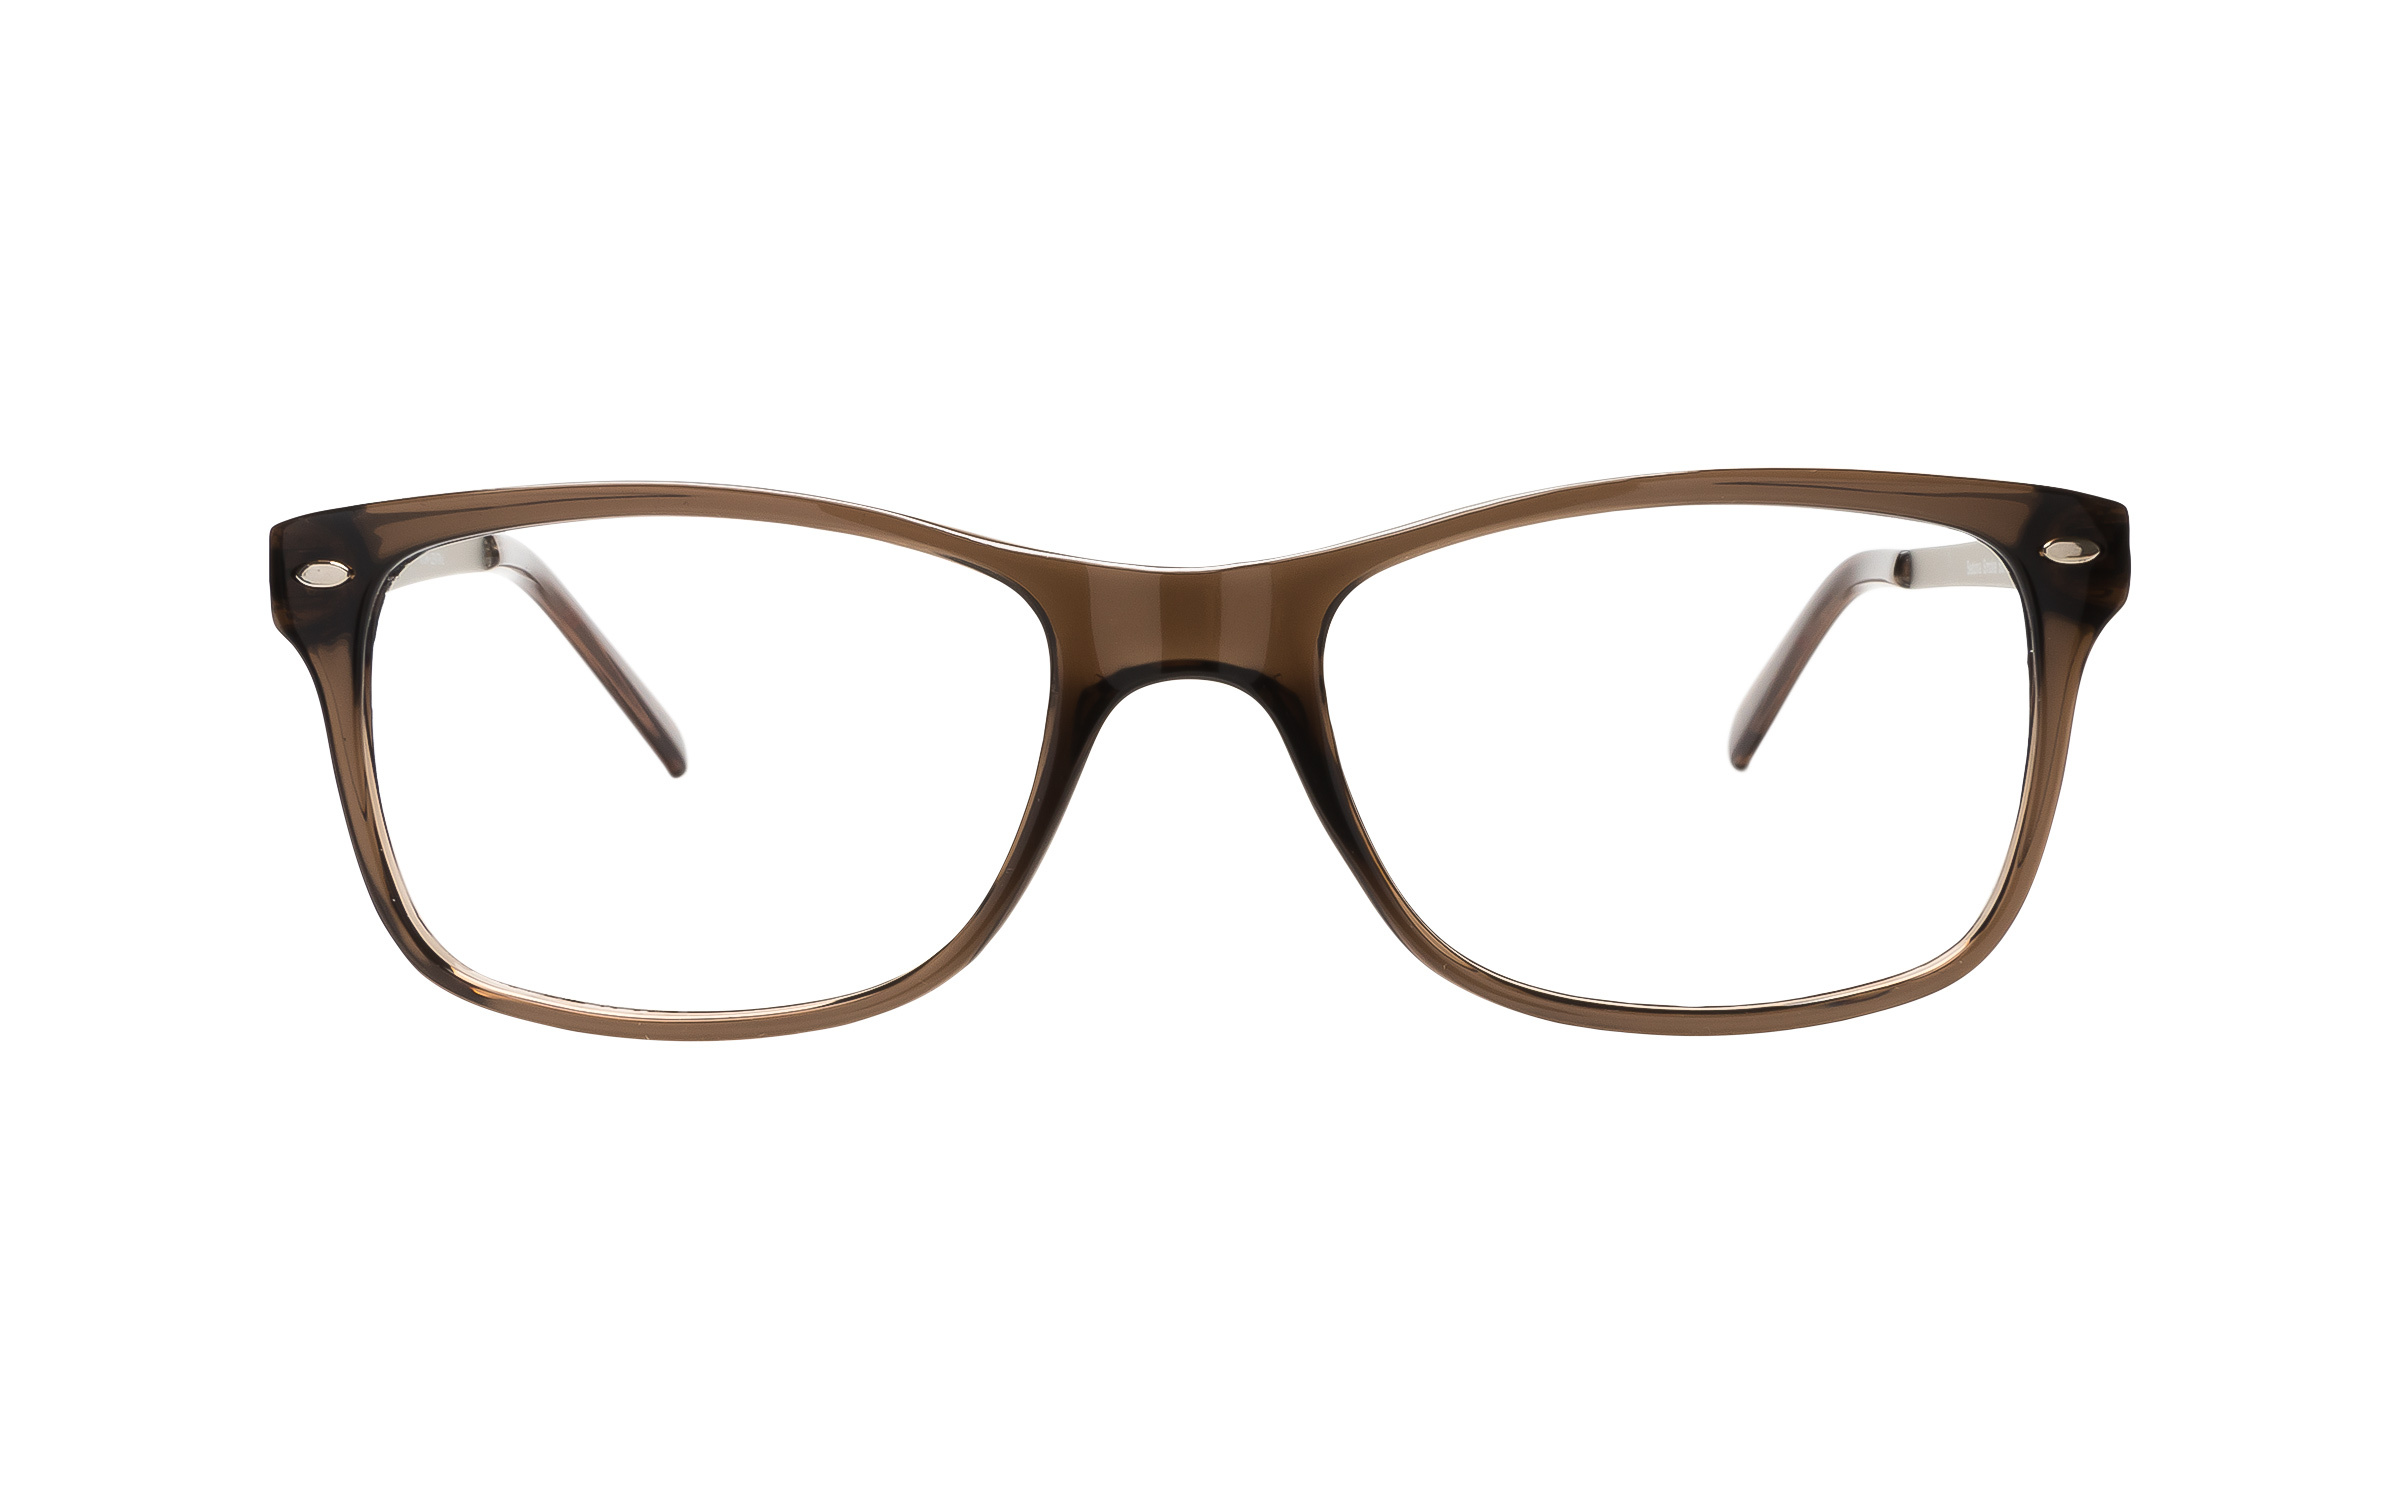 Main and Central Sedona (50) Eyeglasses and Frame in Smoke Grey | Plastic/Metal